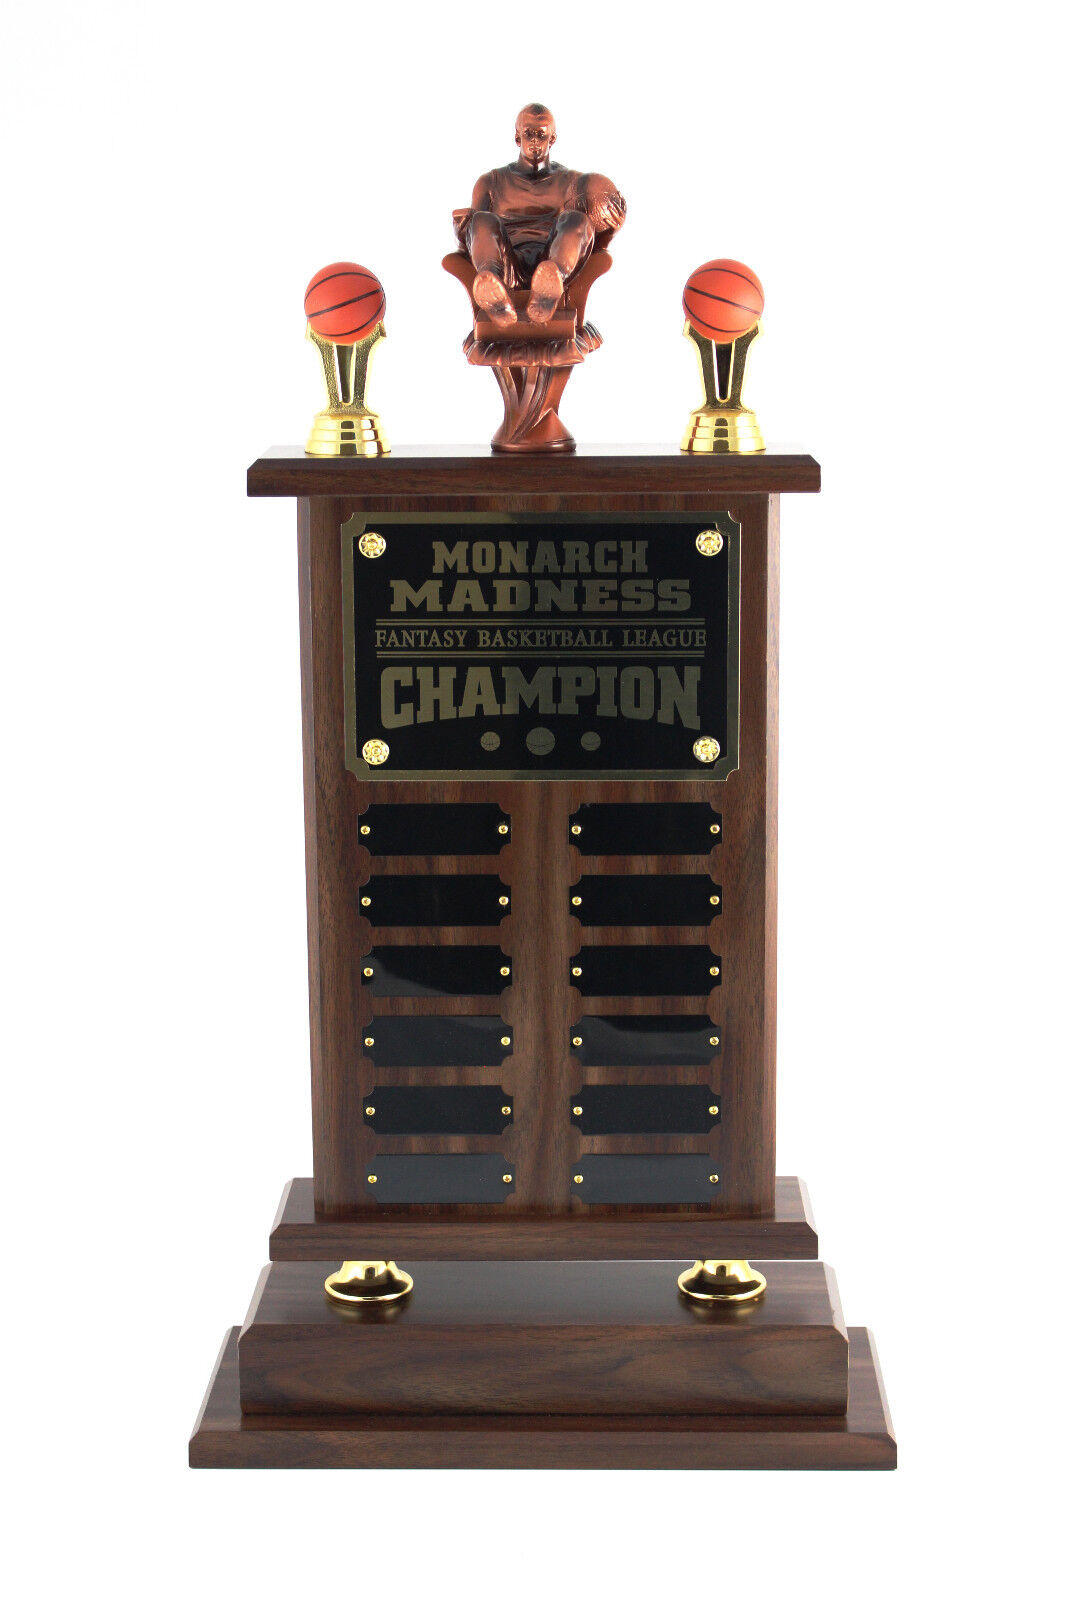 12 YEAR, 23  ARMCHAIR FANTASY BASKETBALL TROPHY - FREE ENGRAVING  SHIPS IN 1 DAY